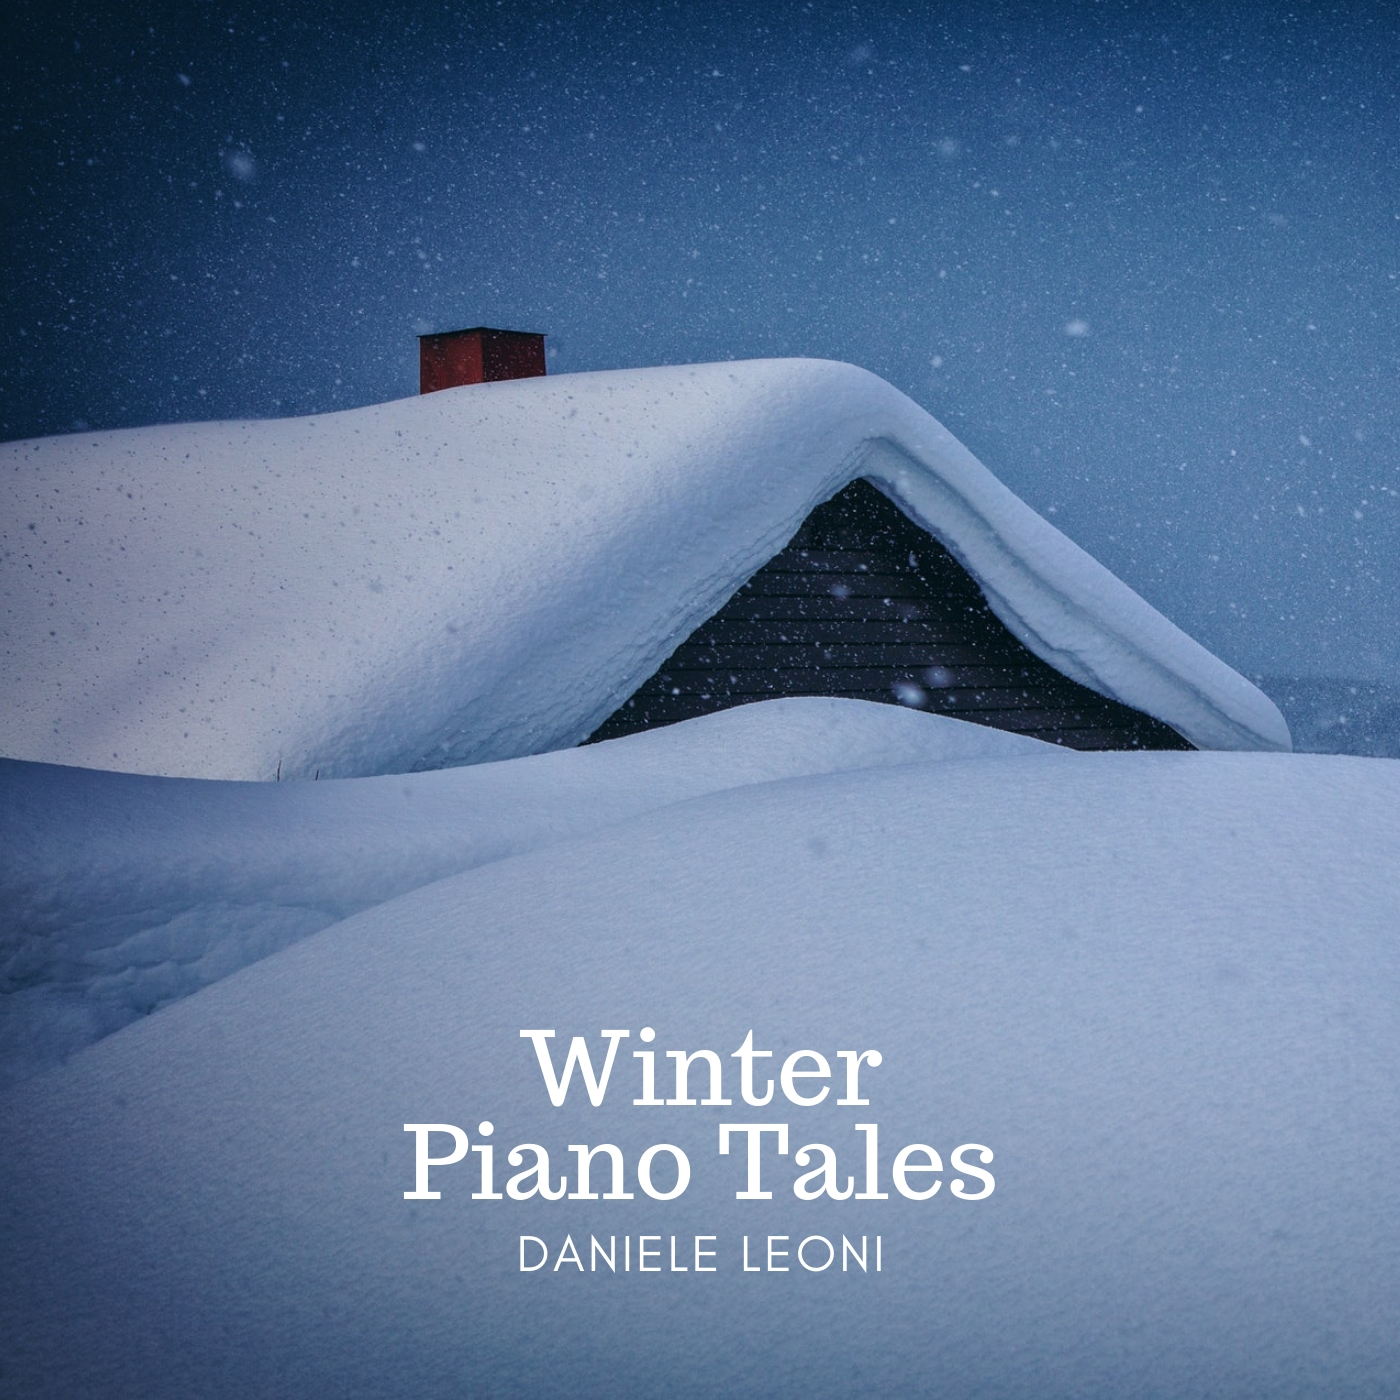 Winter Piano Tales